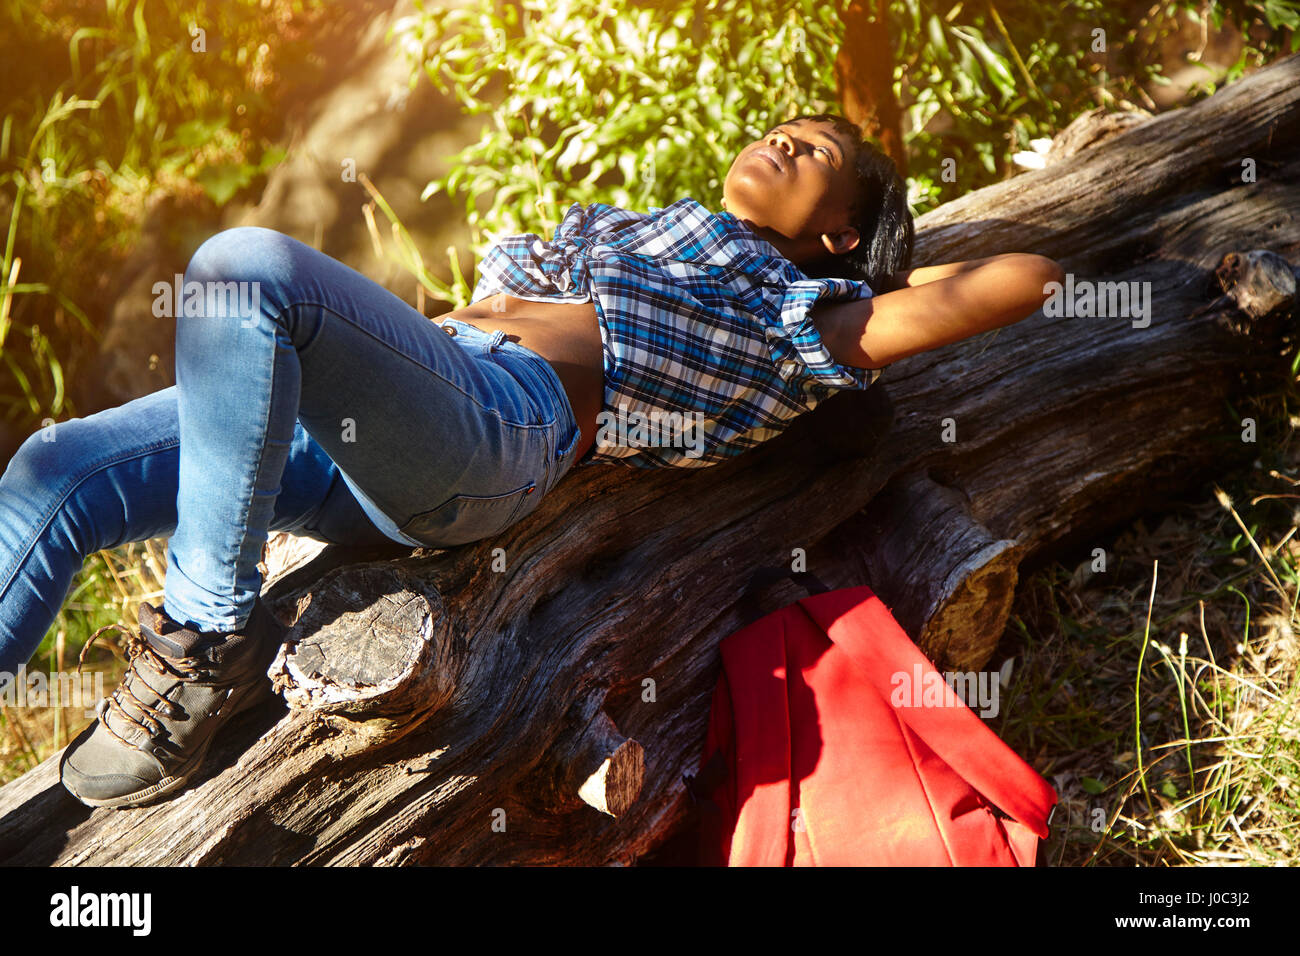 Young woman lying on fallen tree, Cape Town, South Africa - Stock Image